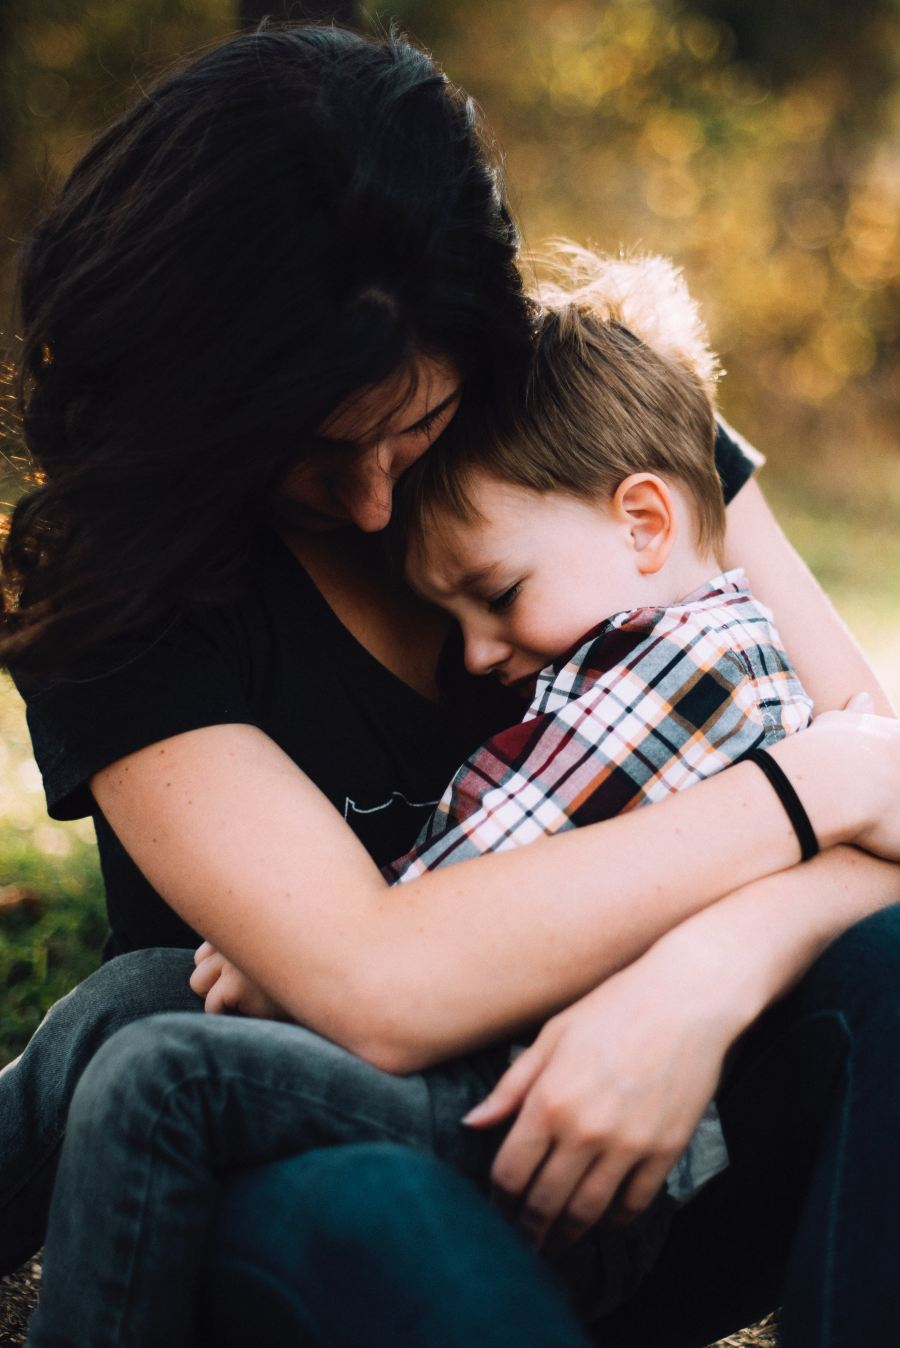 Mom holding child to relax and embrace them